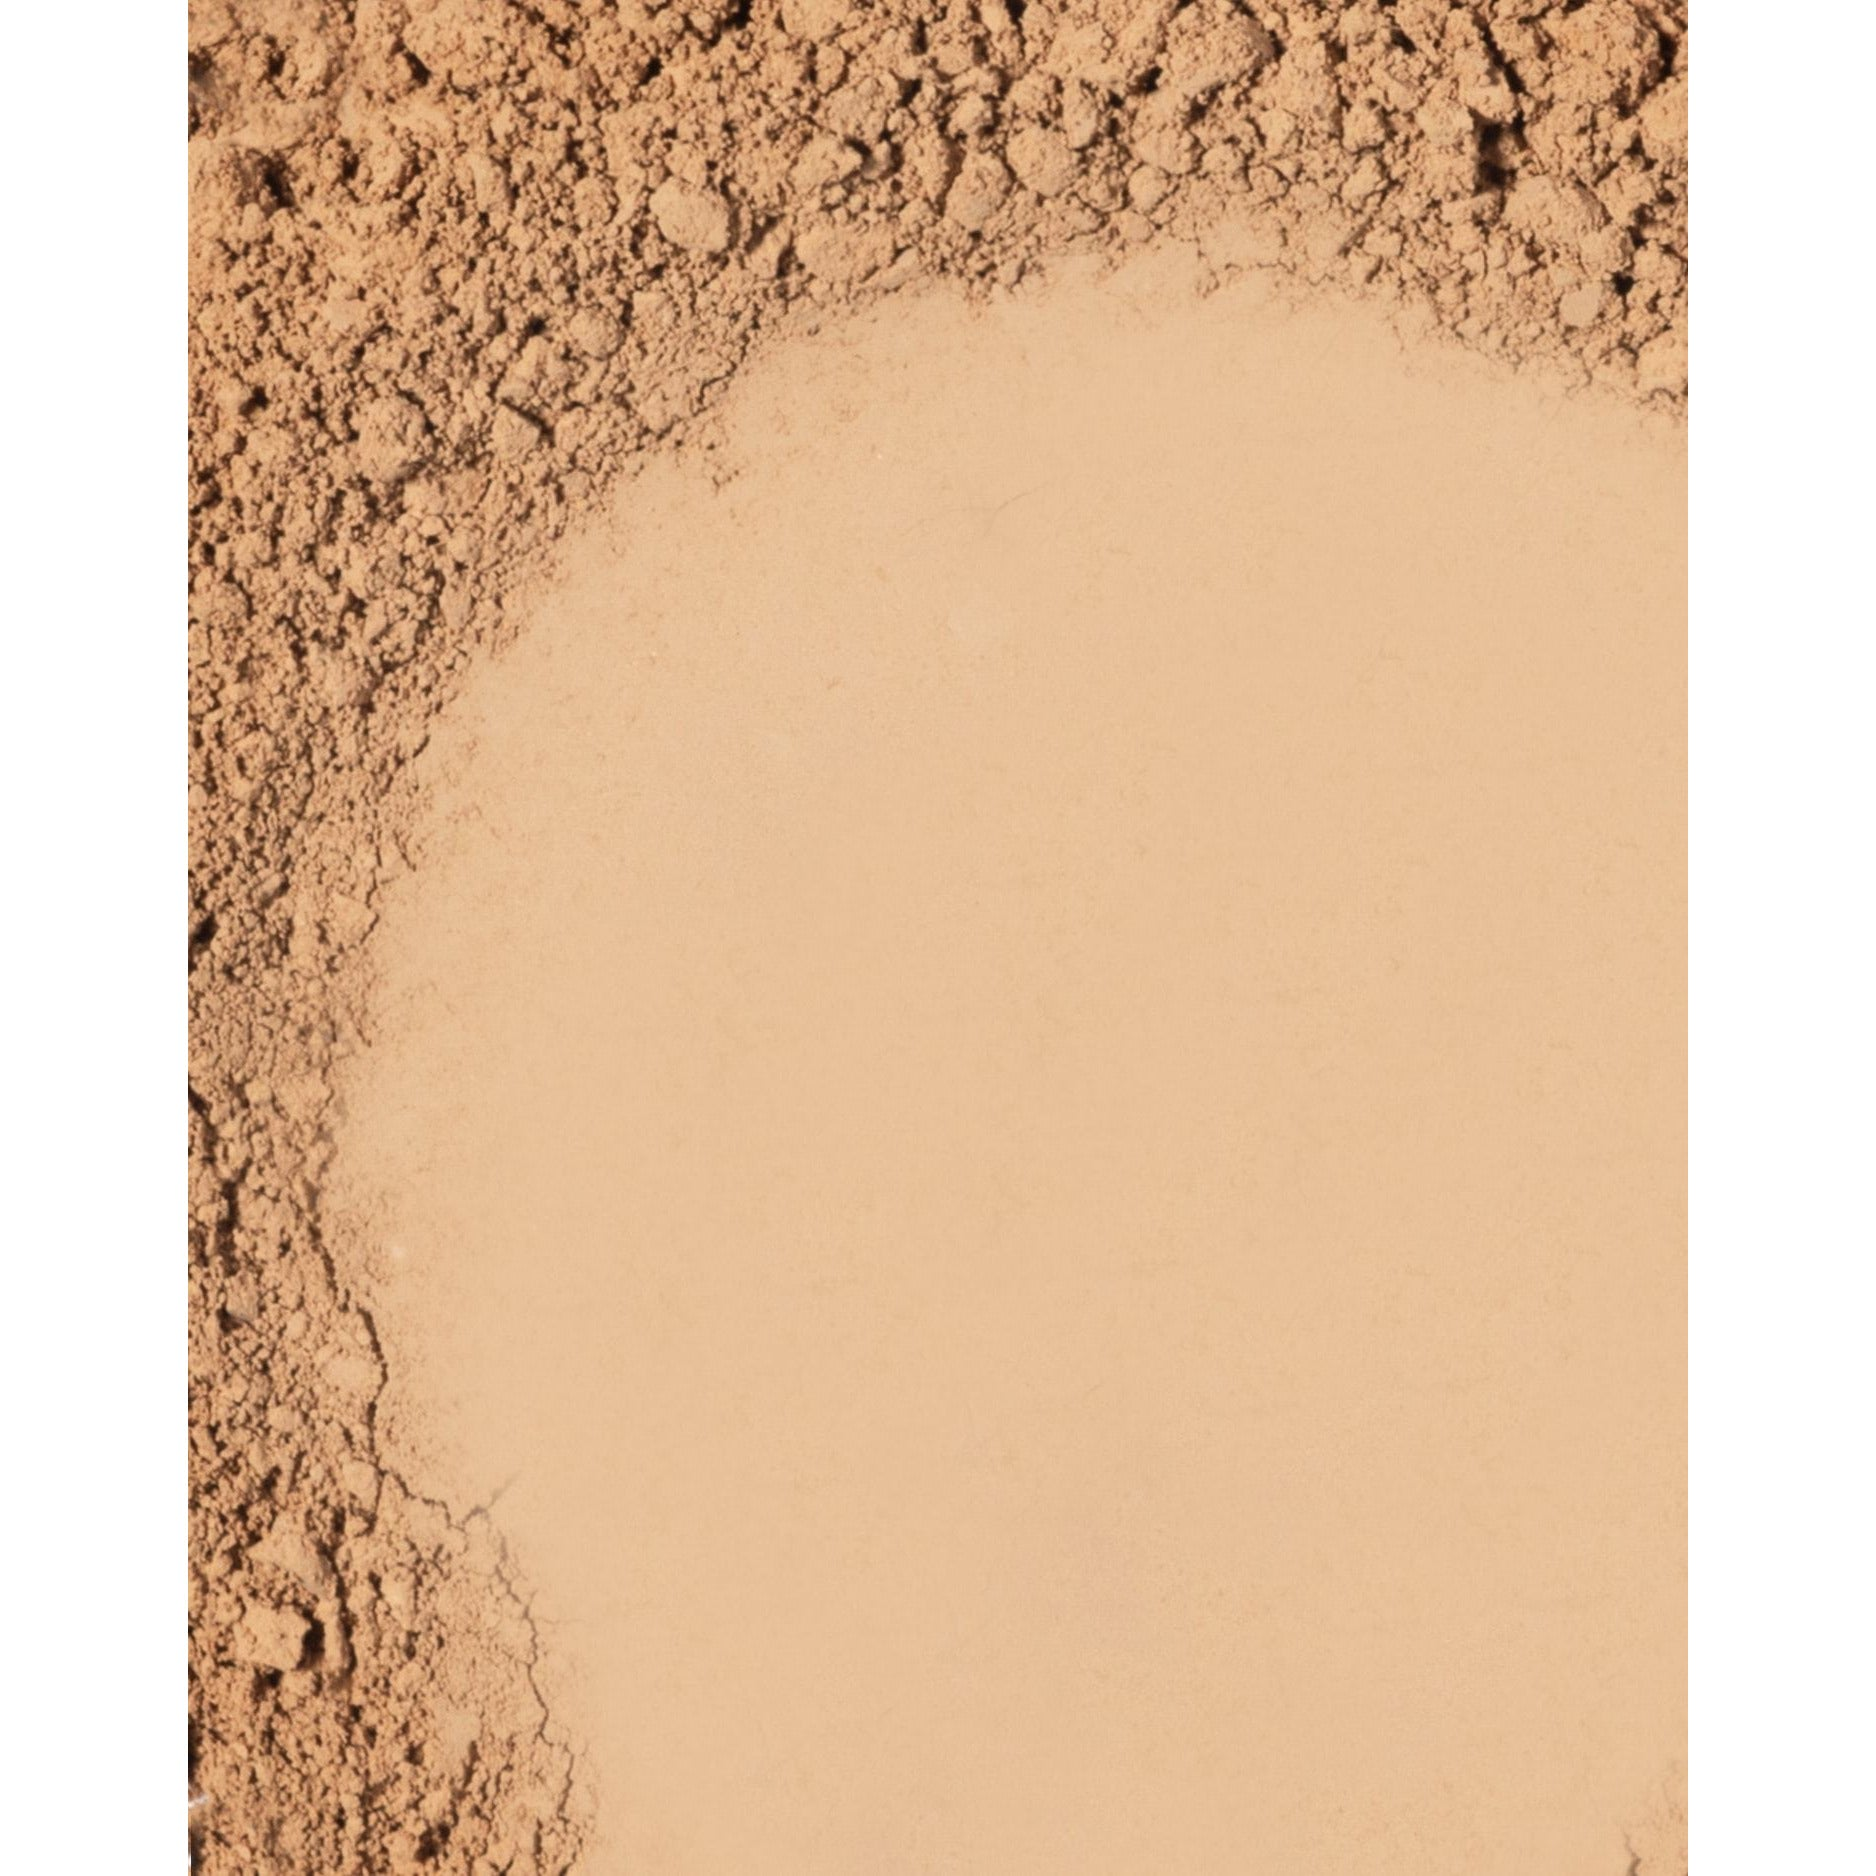 Gregarious - Omiana Loose Powder Mineral Foundation No Titanium Dioxide and No Mica